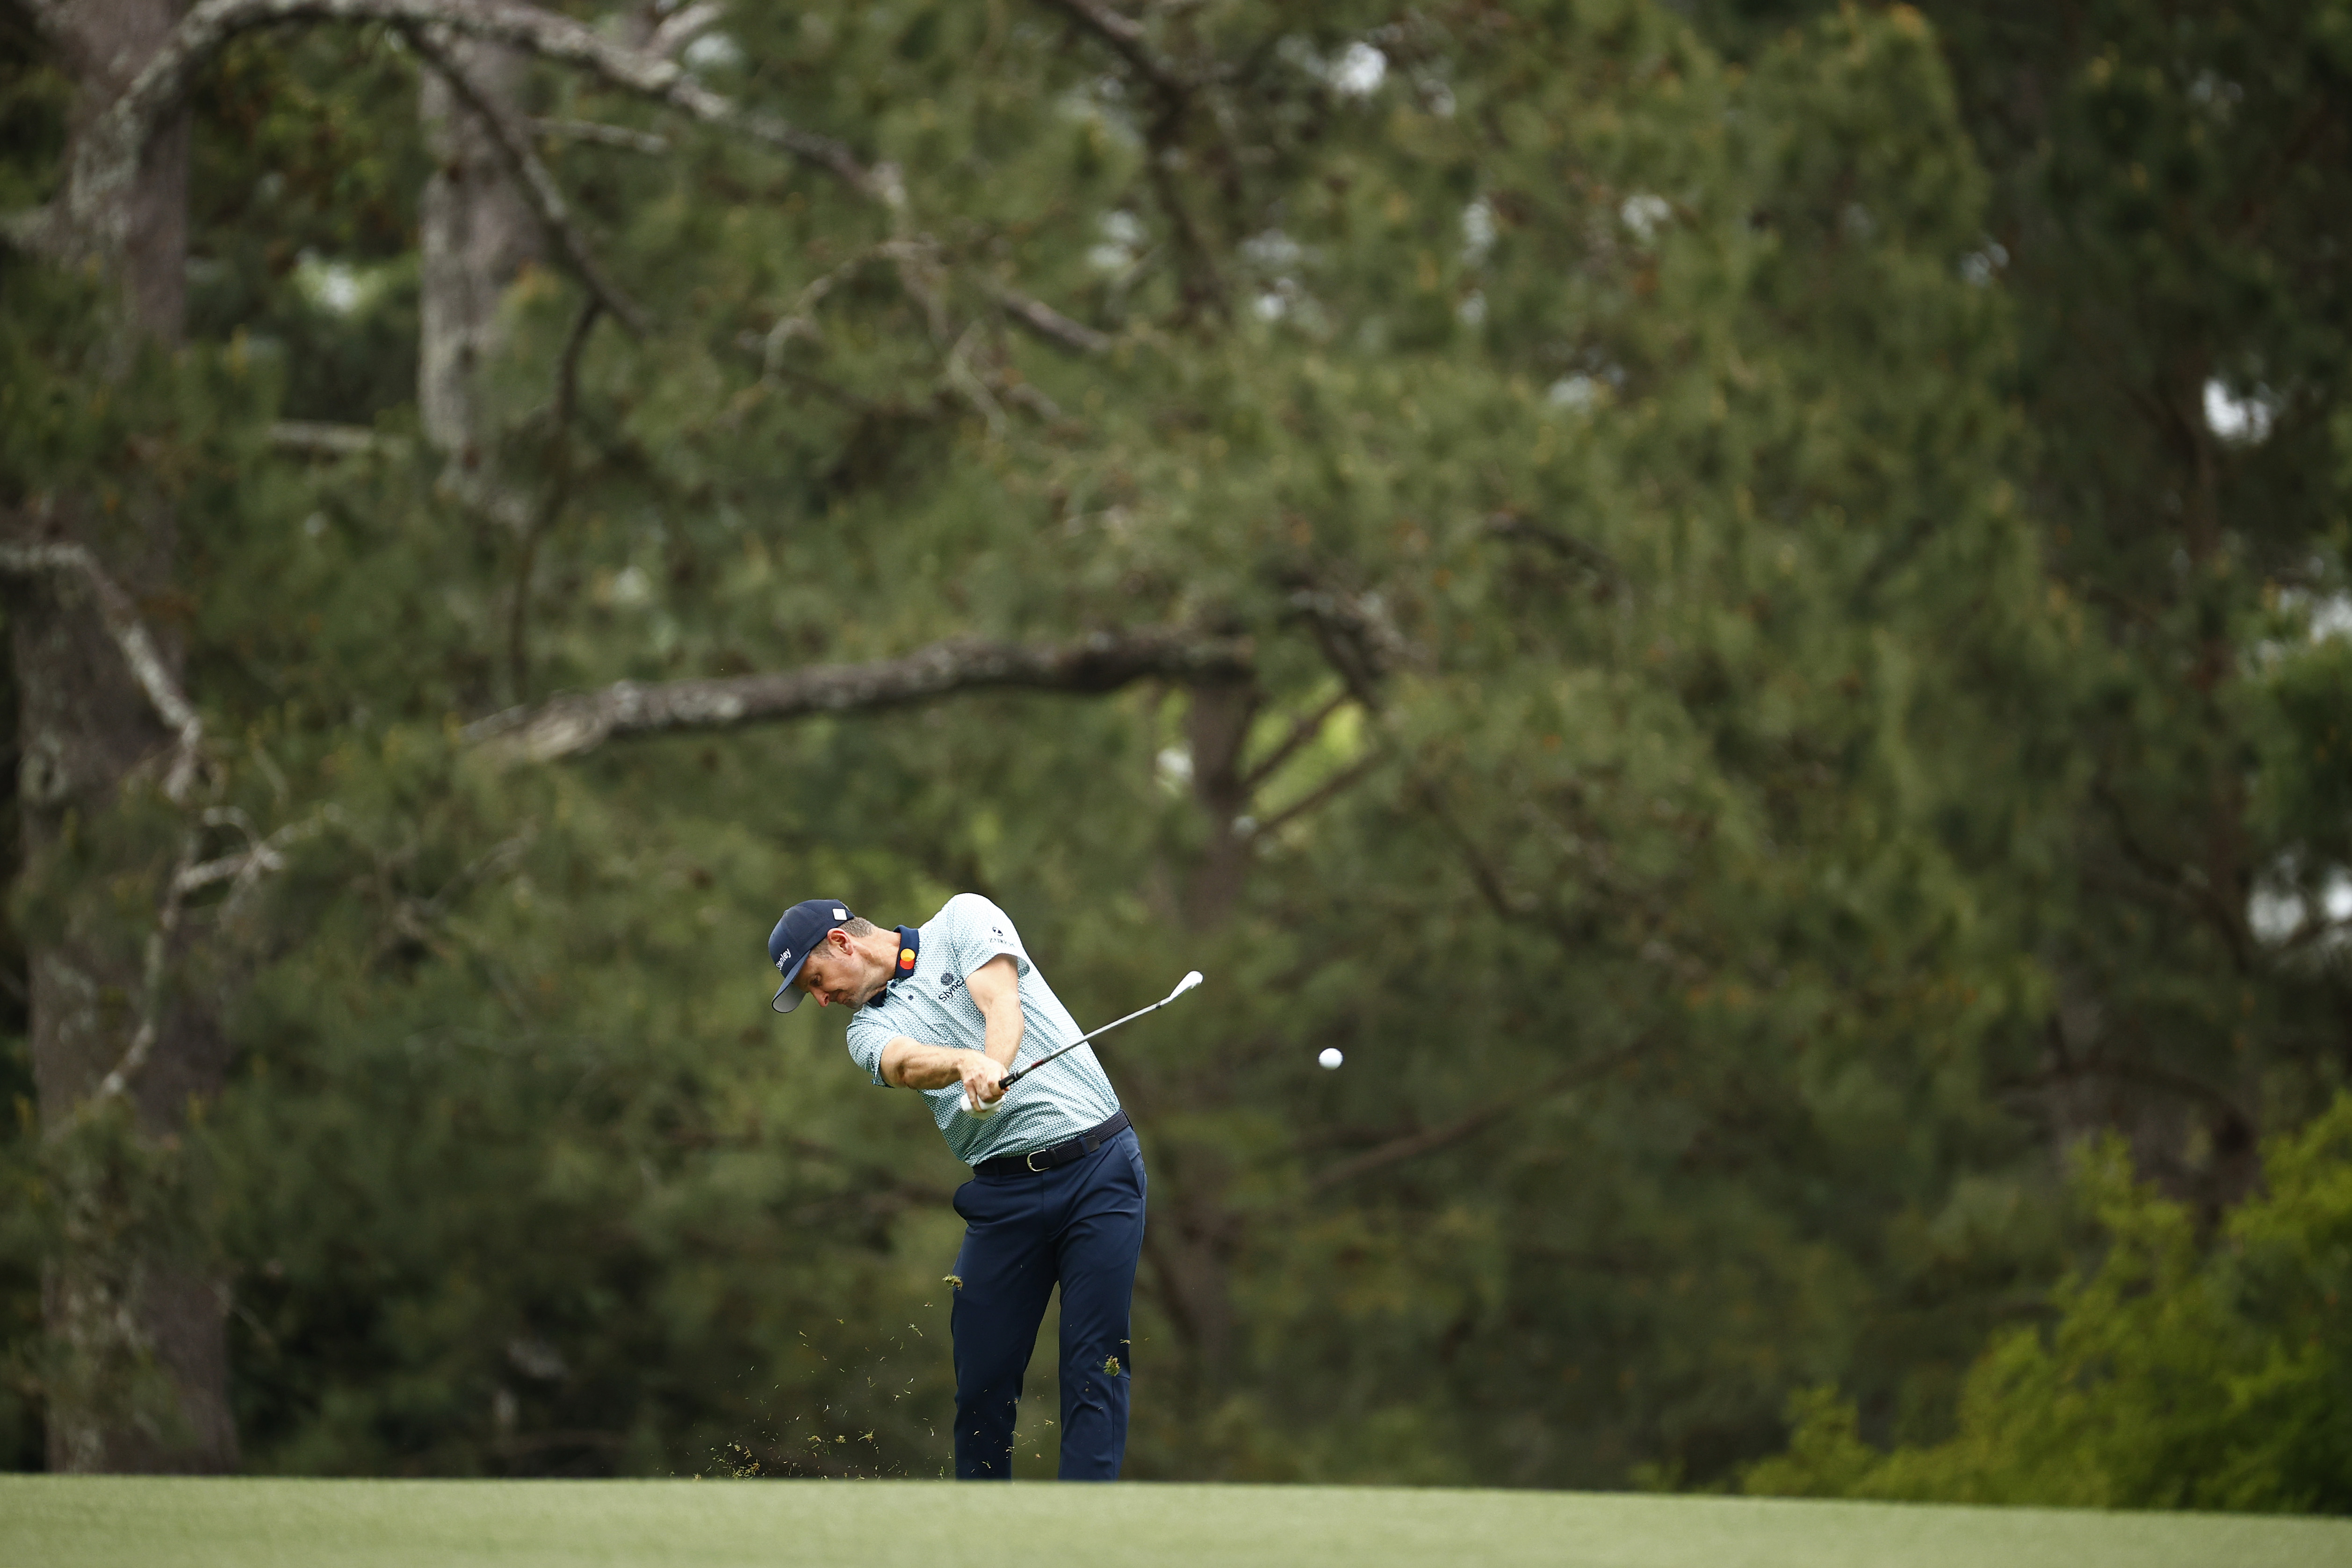 Justin Rose of England plays a shot on the 15th hole during the second round of the Masters at Augusta National Golf Club on April 09, 2021 in Augusta, Georgia.